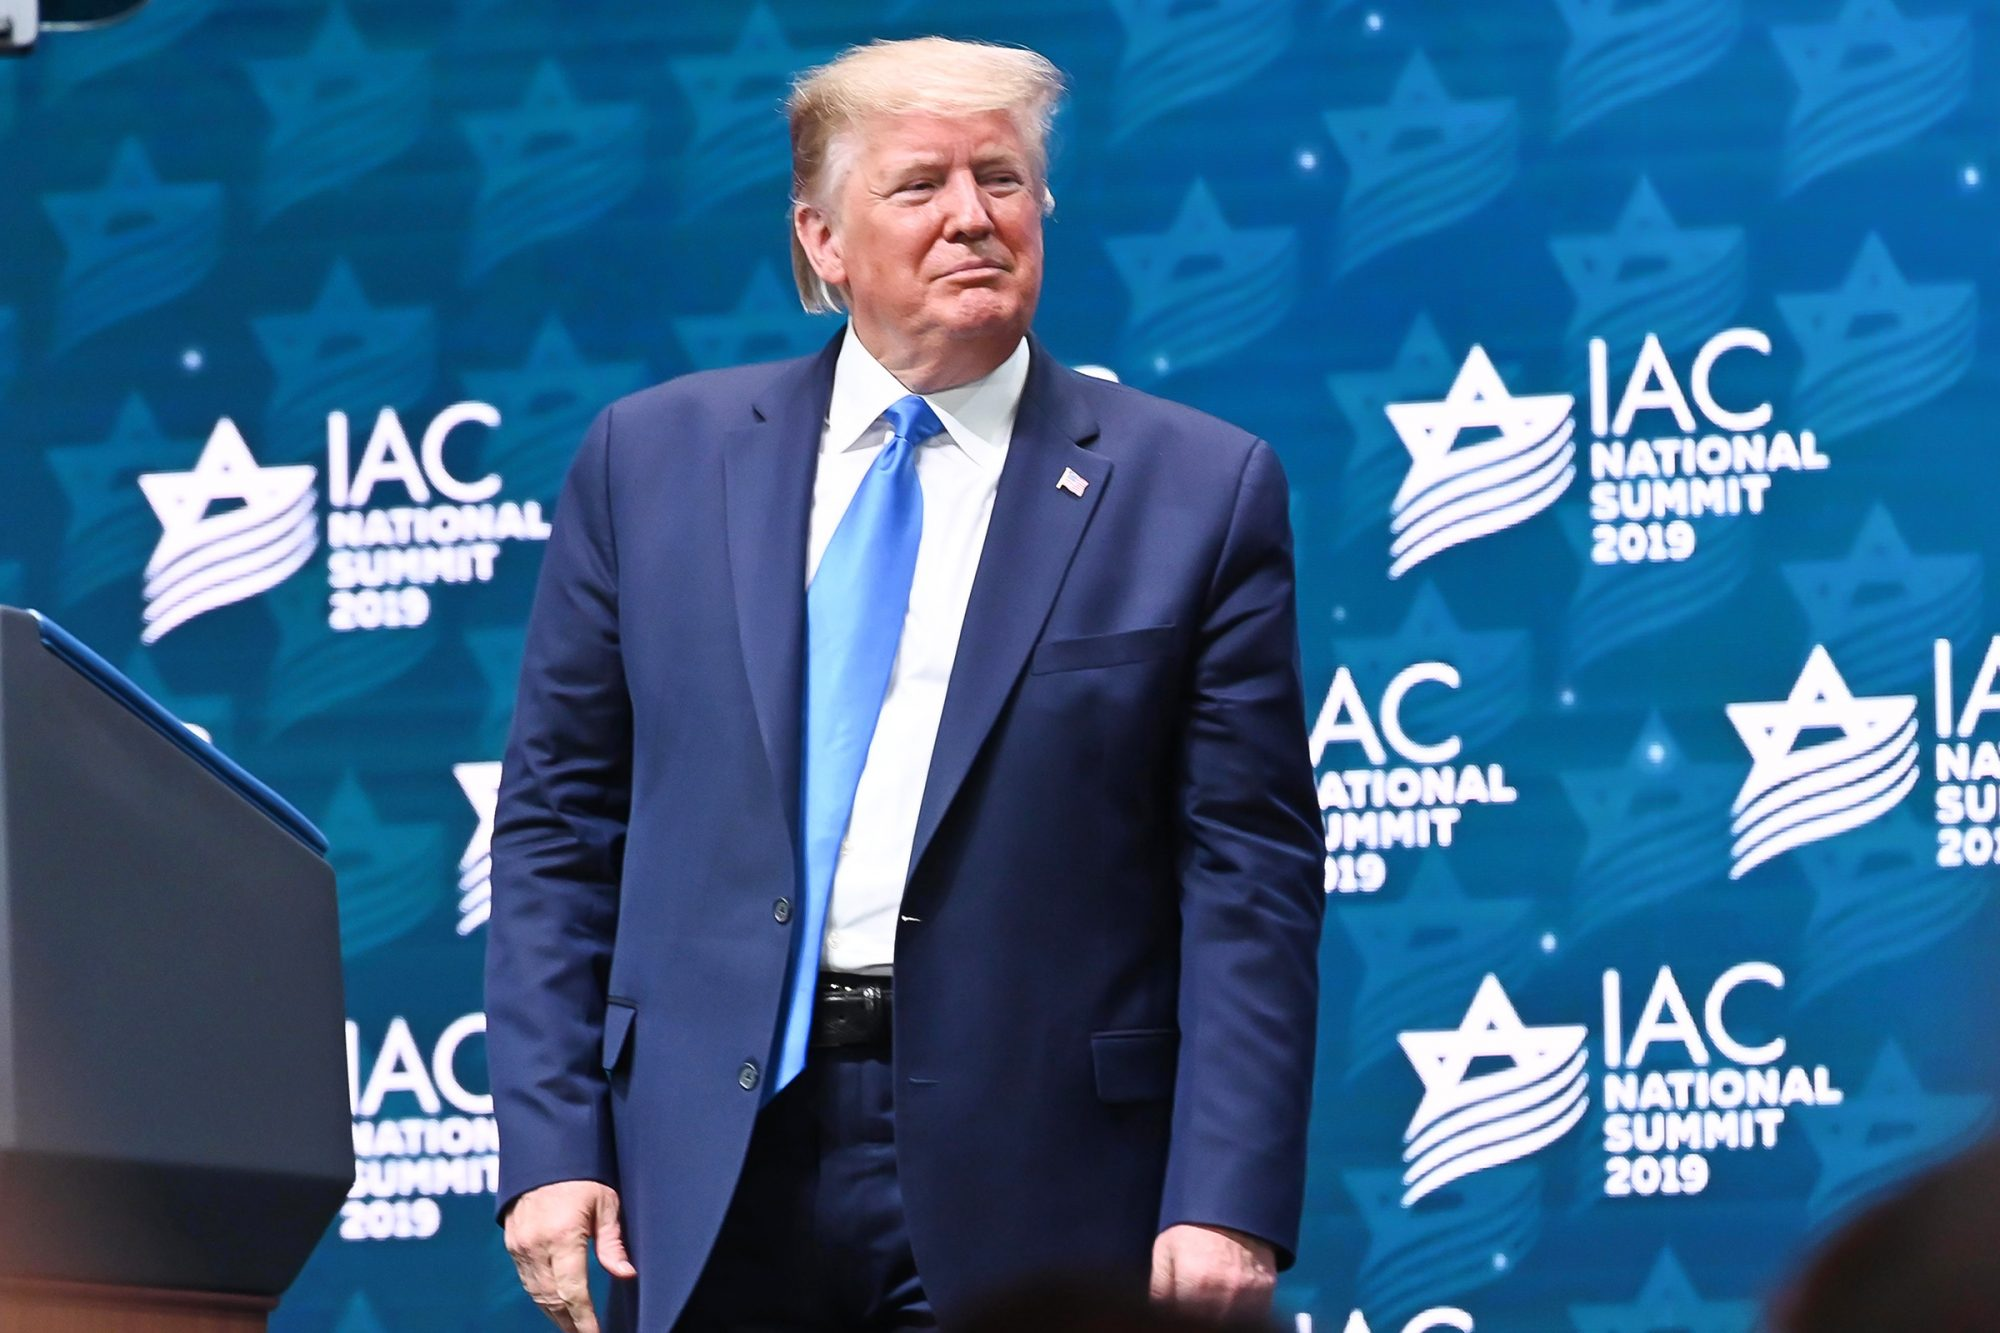 President Donald Trump speaks at the Israeli American Council National Summit on December 07, 2019 in Hollywood, Florida